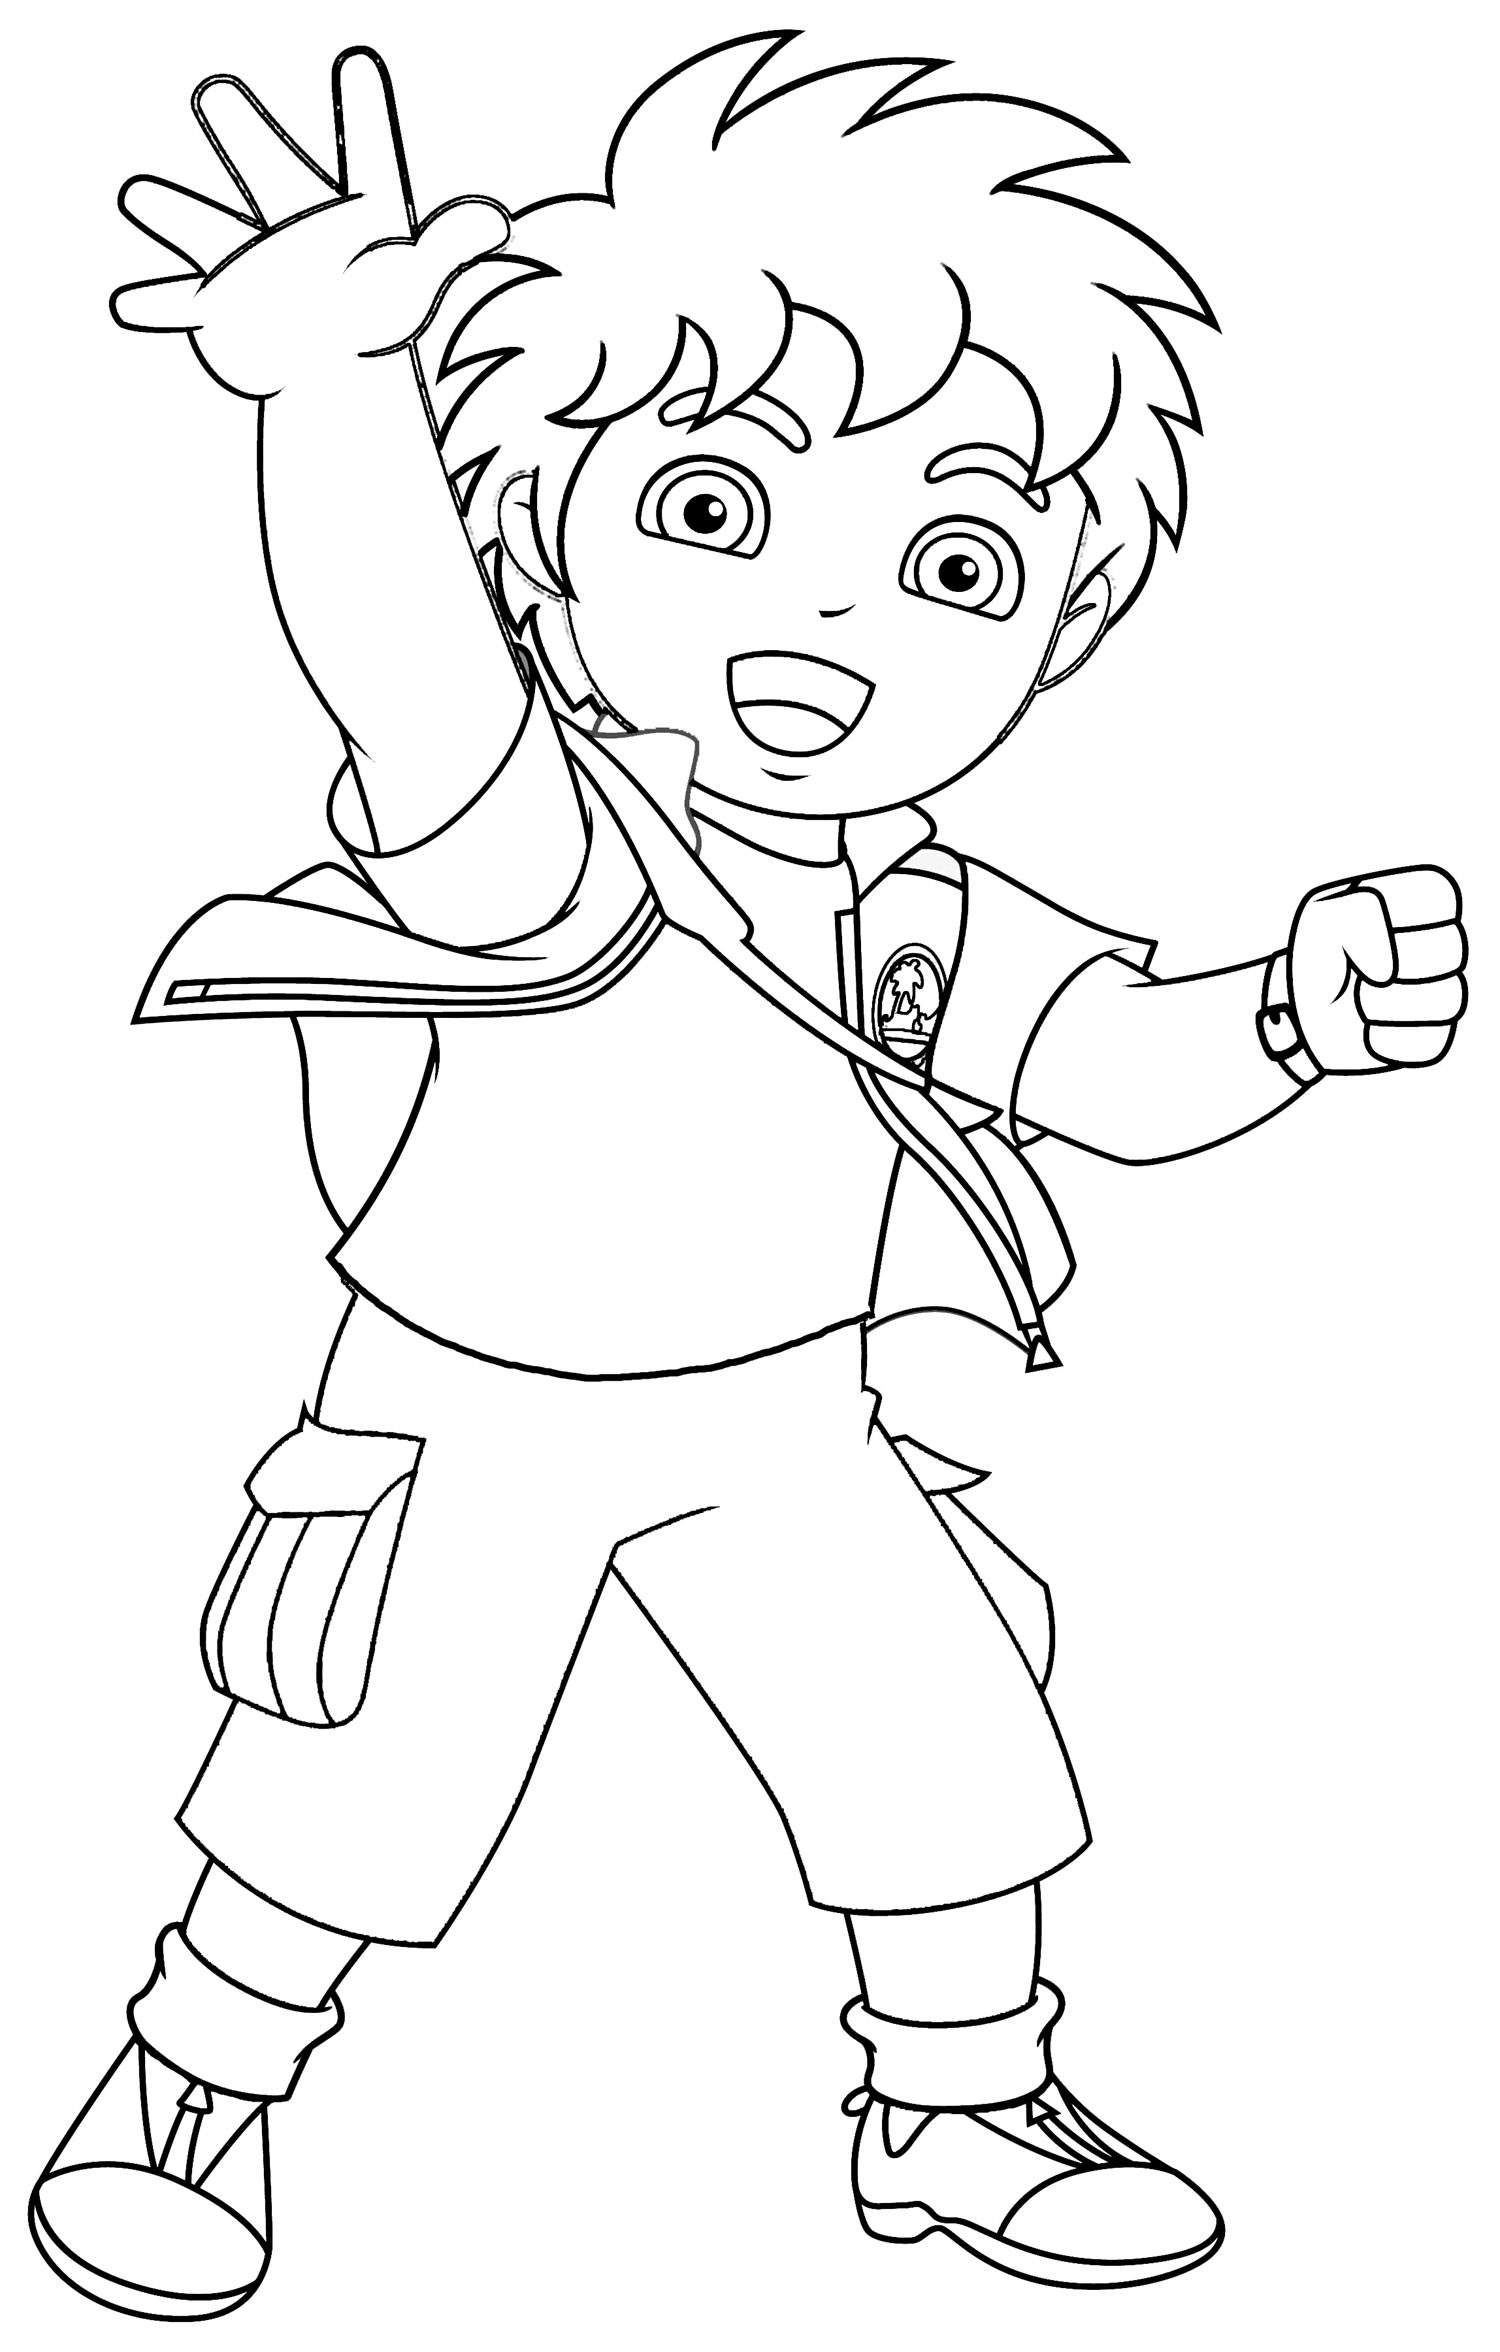 Download Nick Jr Coloring Pages 8 Print